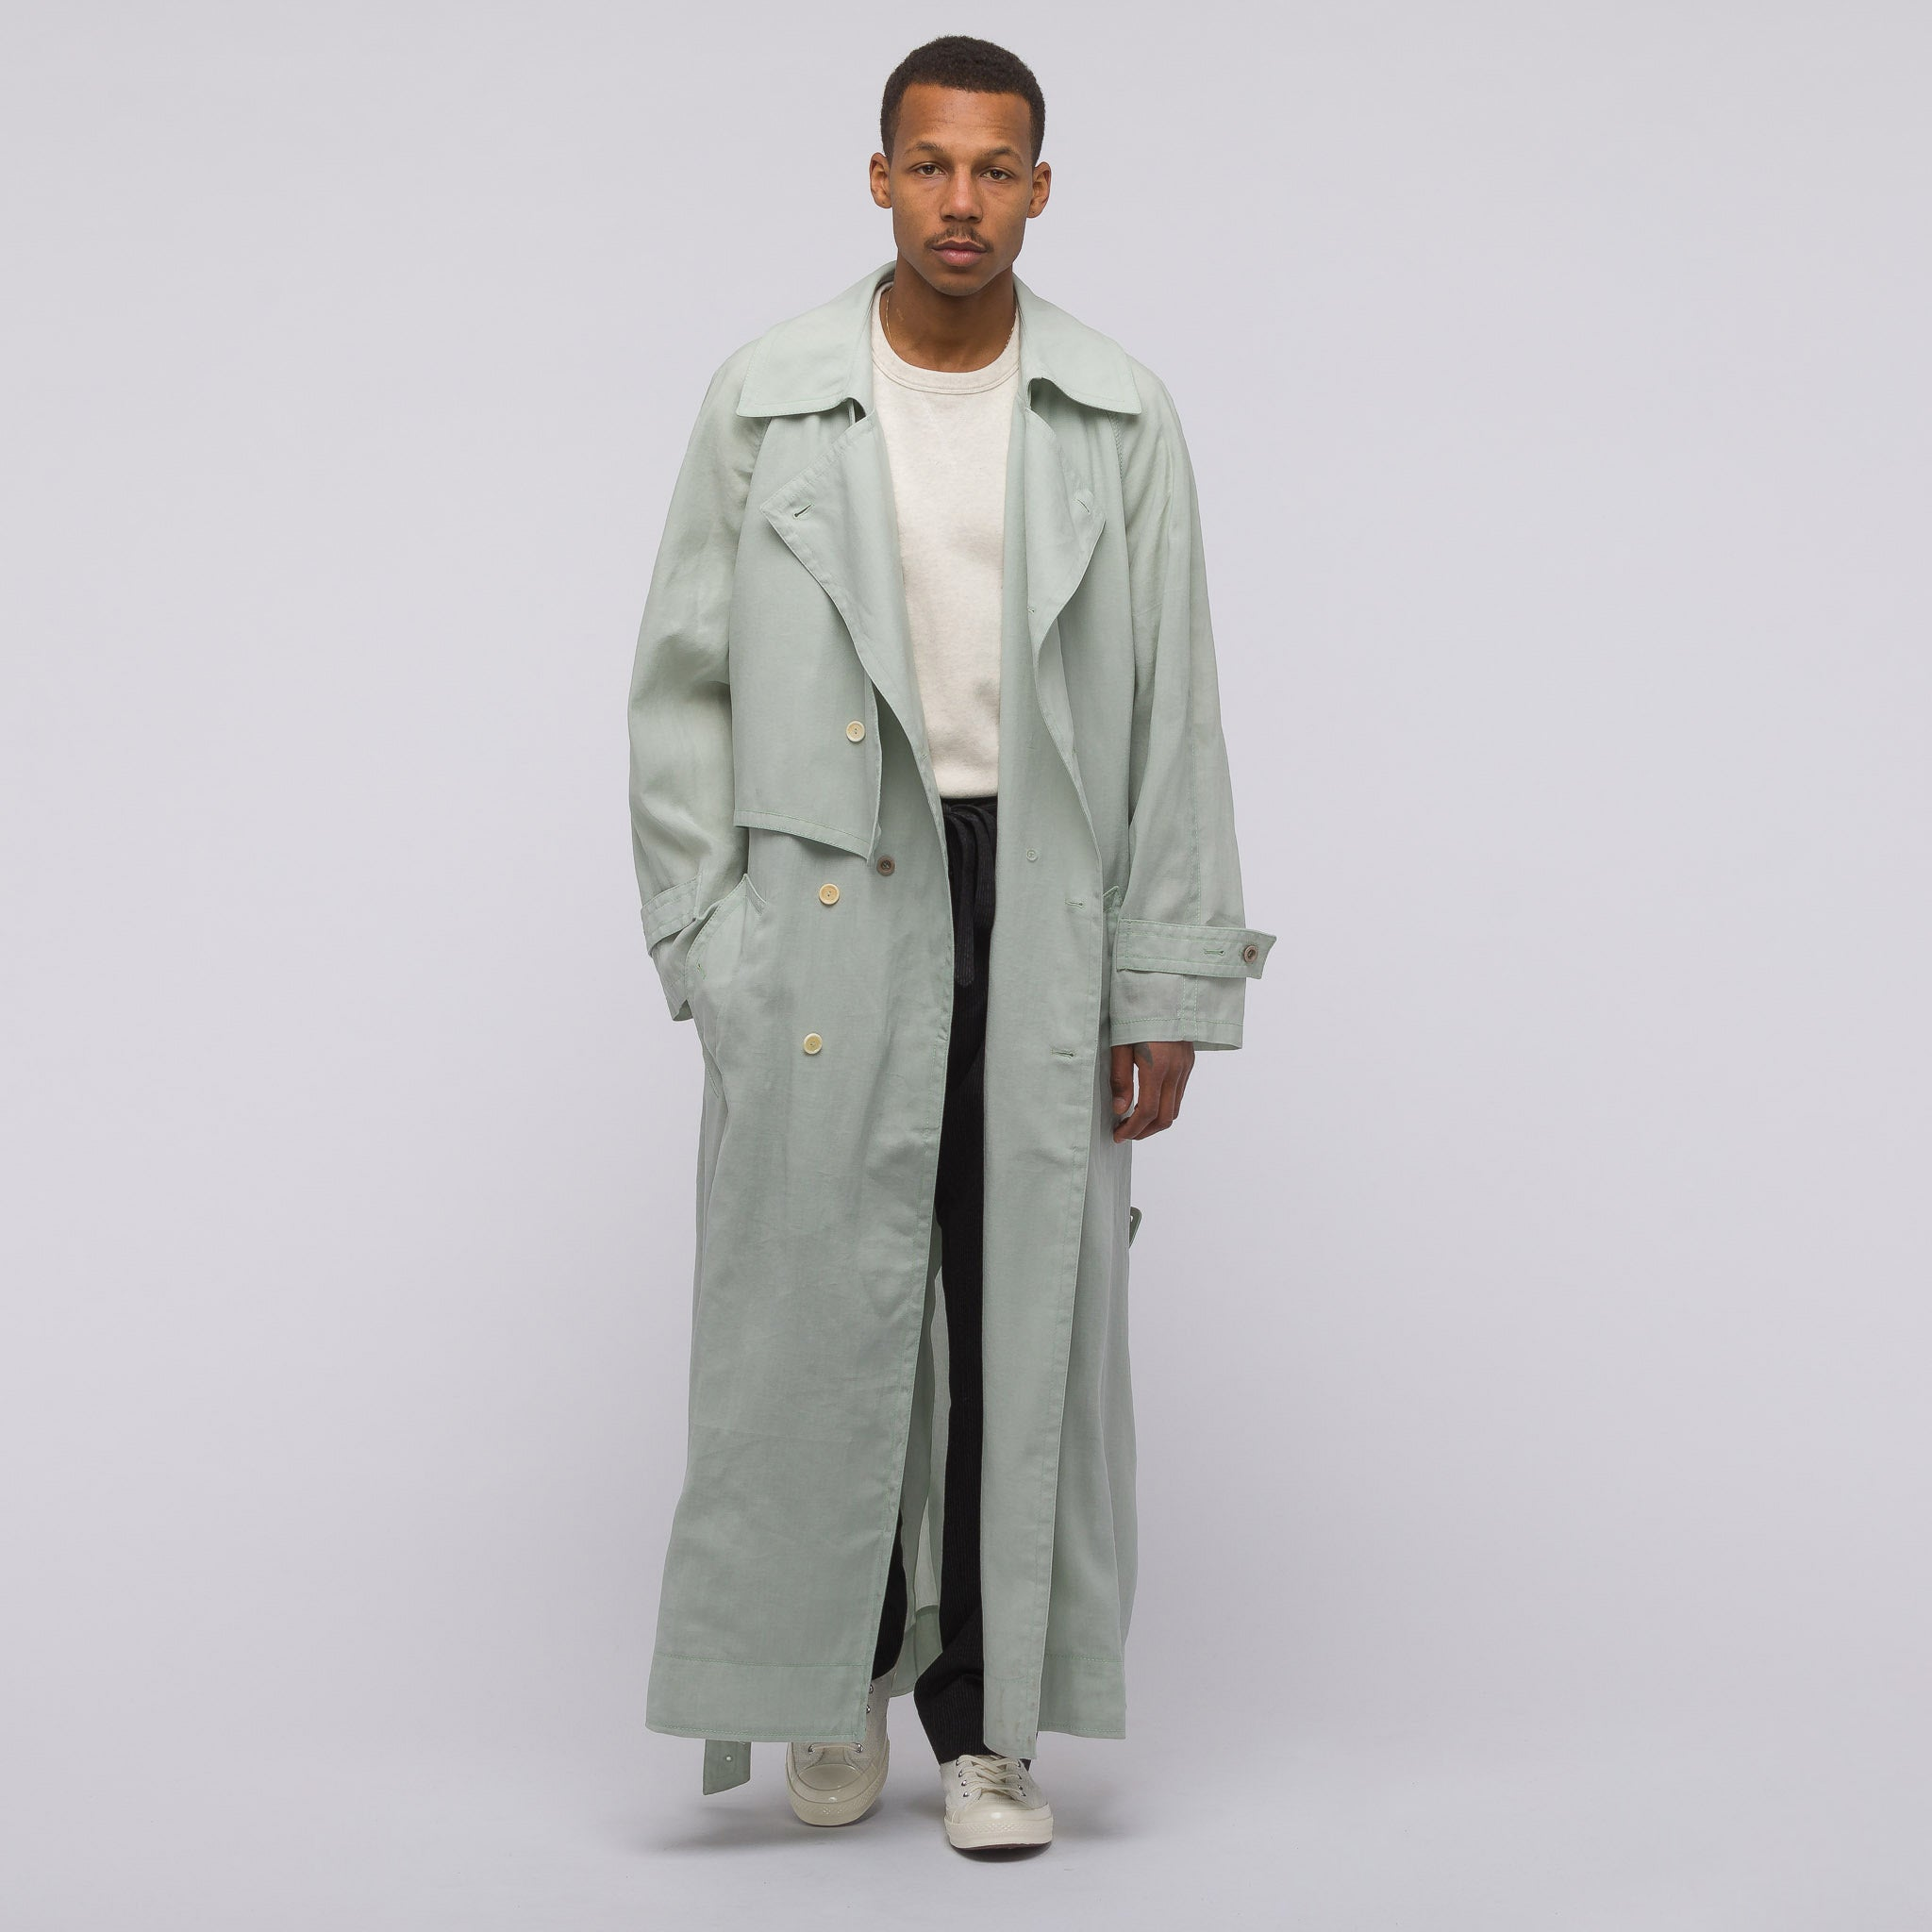 Acne Studios Morres Wax Trench Coat in Mint Green